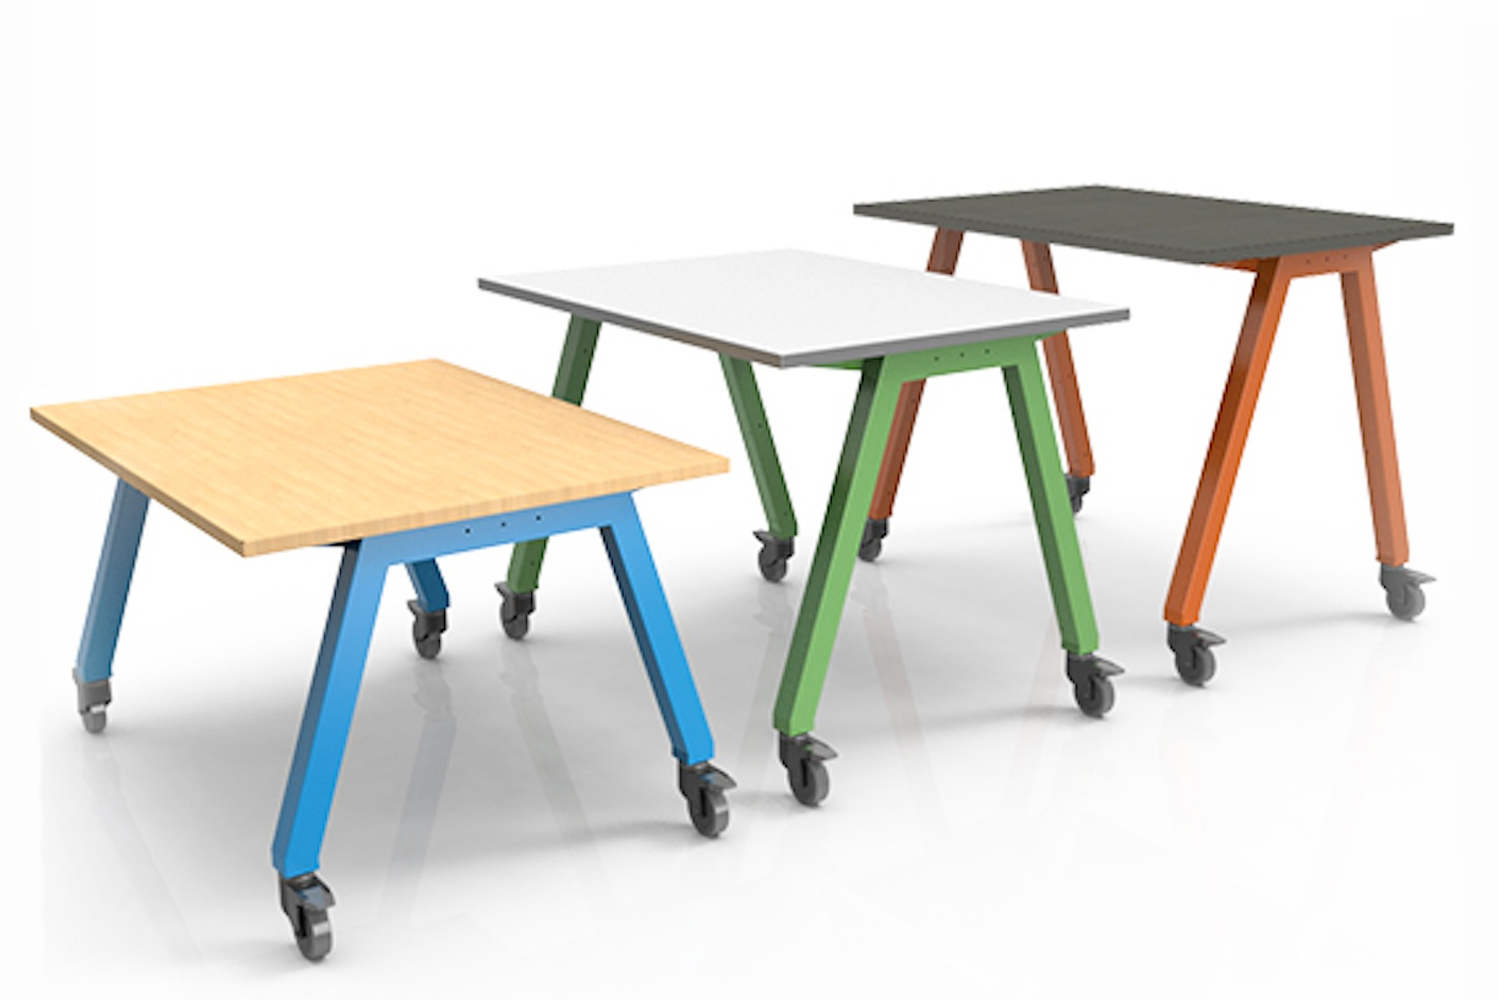 The tables are sturdy yet sophisticated, with Smith System offering multiple sizes and various finishing options.